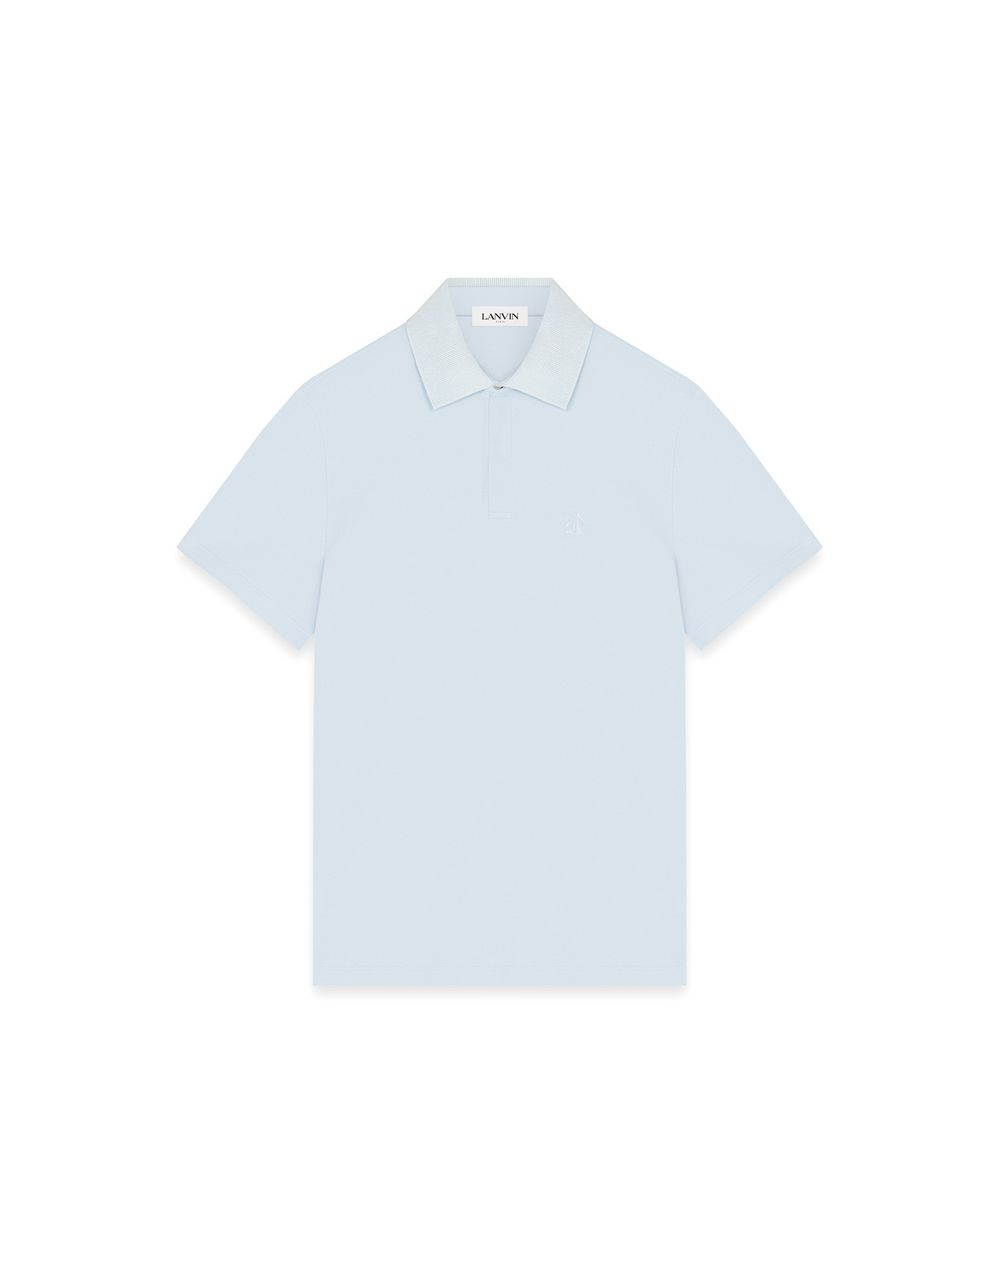 GROSGRAIN COLLAR POLO - Lanvin